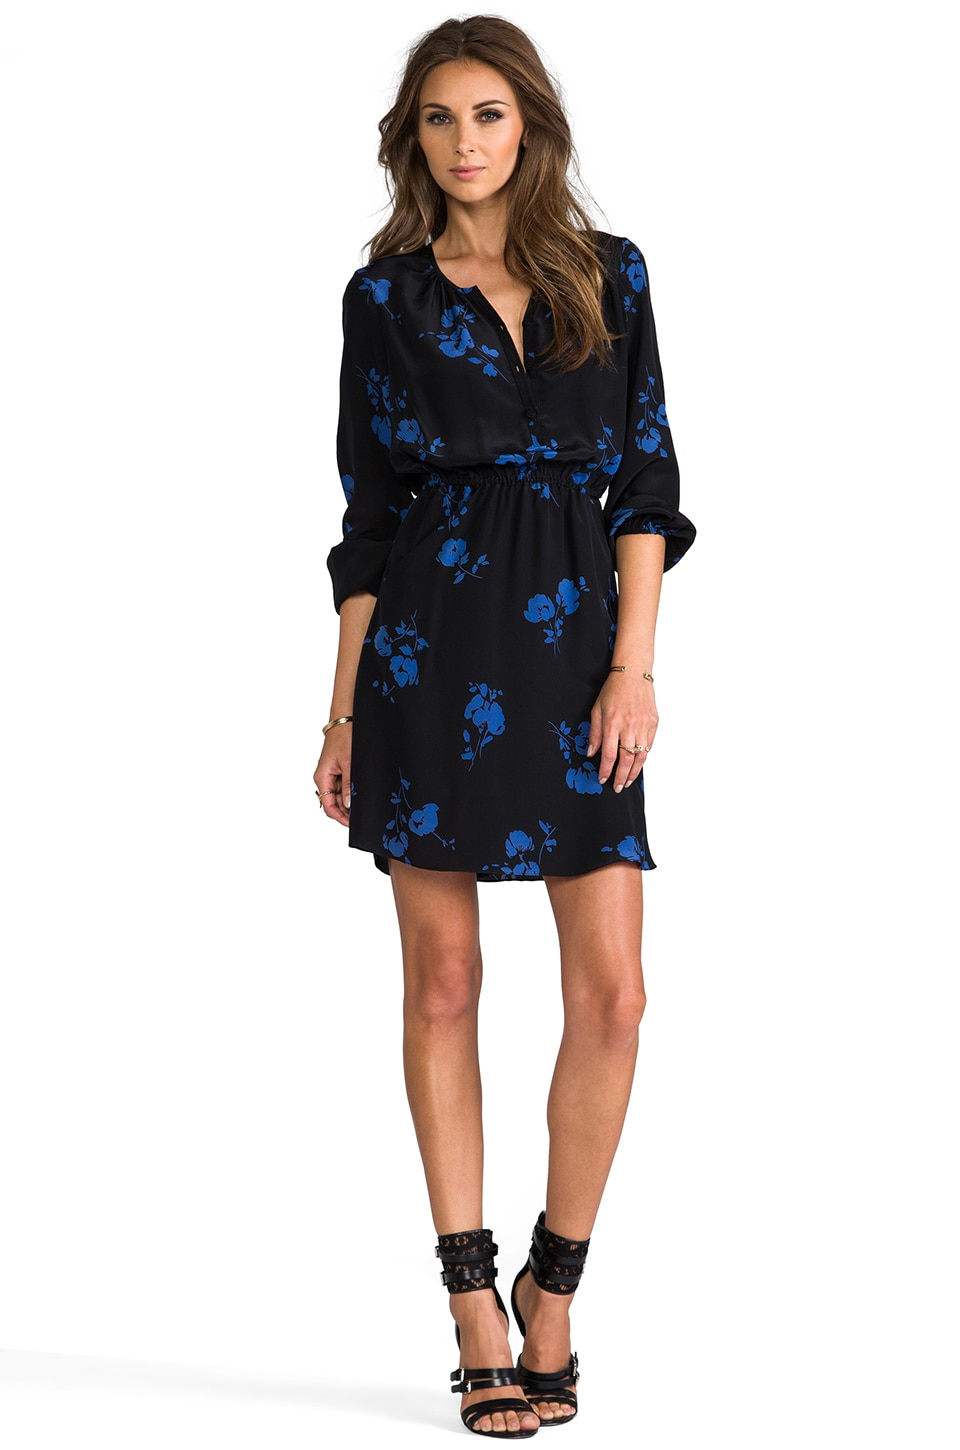 Shoshanna Oakes Garden Print Mirabel Dress in Black/Denim Blue